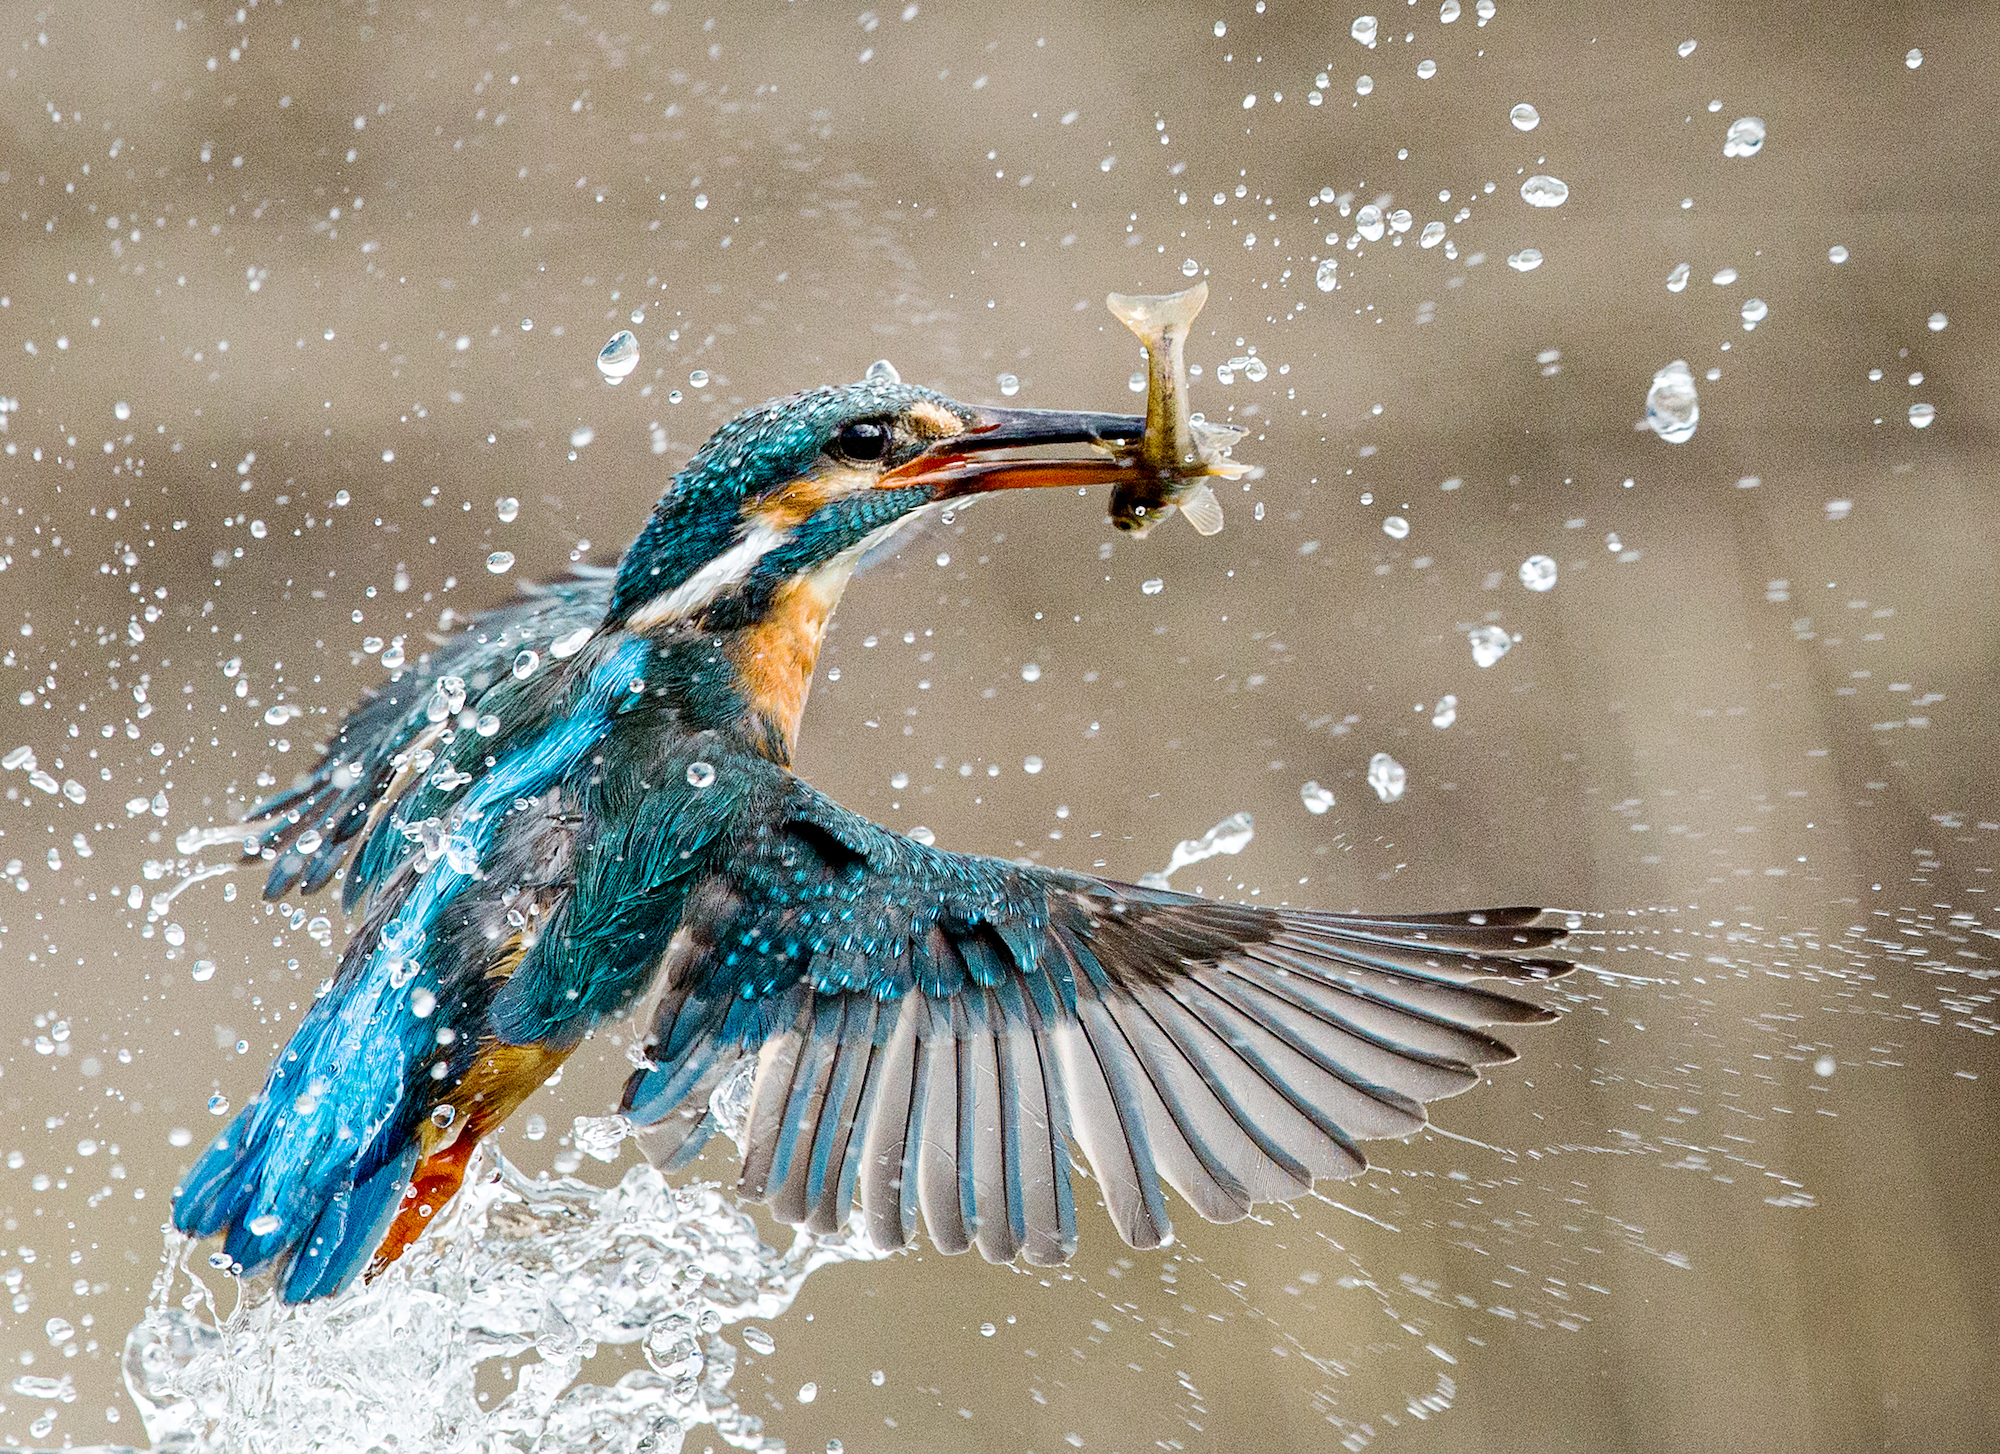 Image of a Kingfisher taken with a shutter speed of 1/3200s